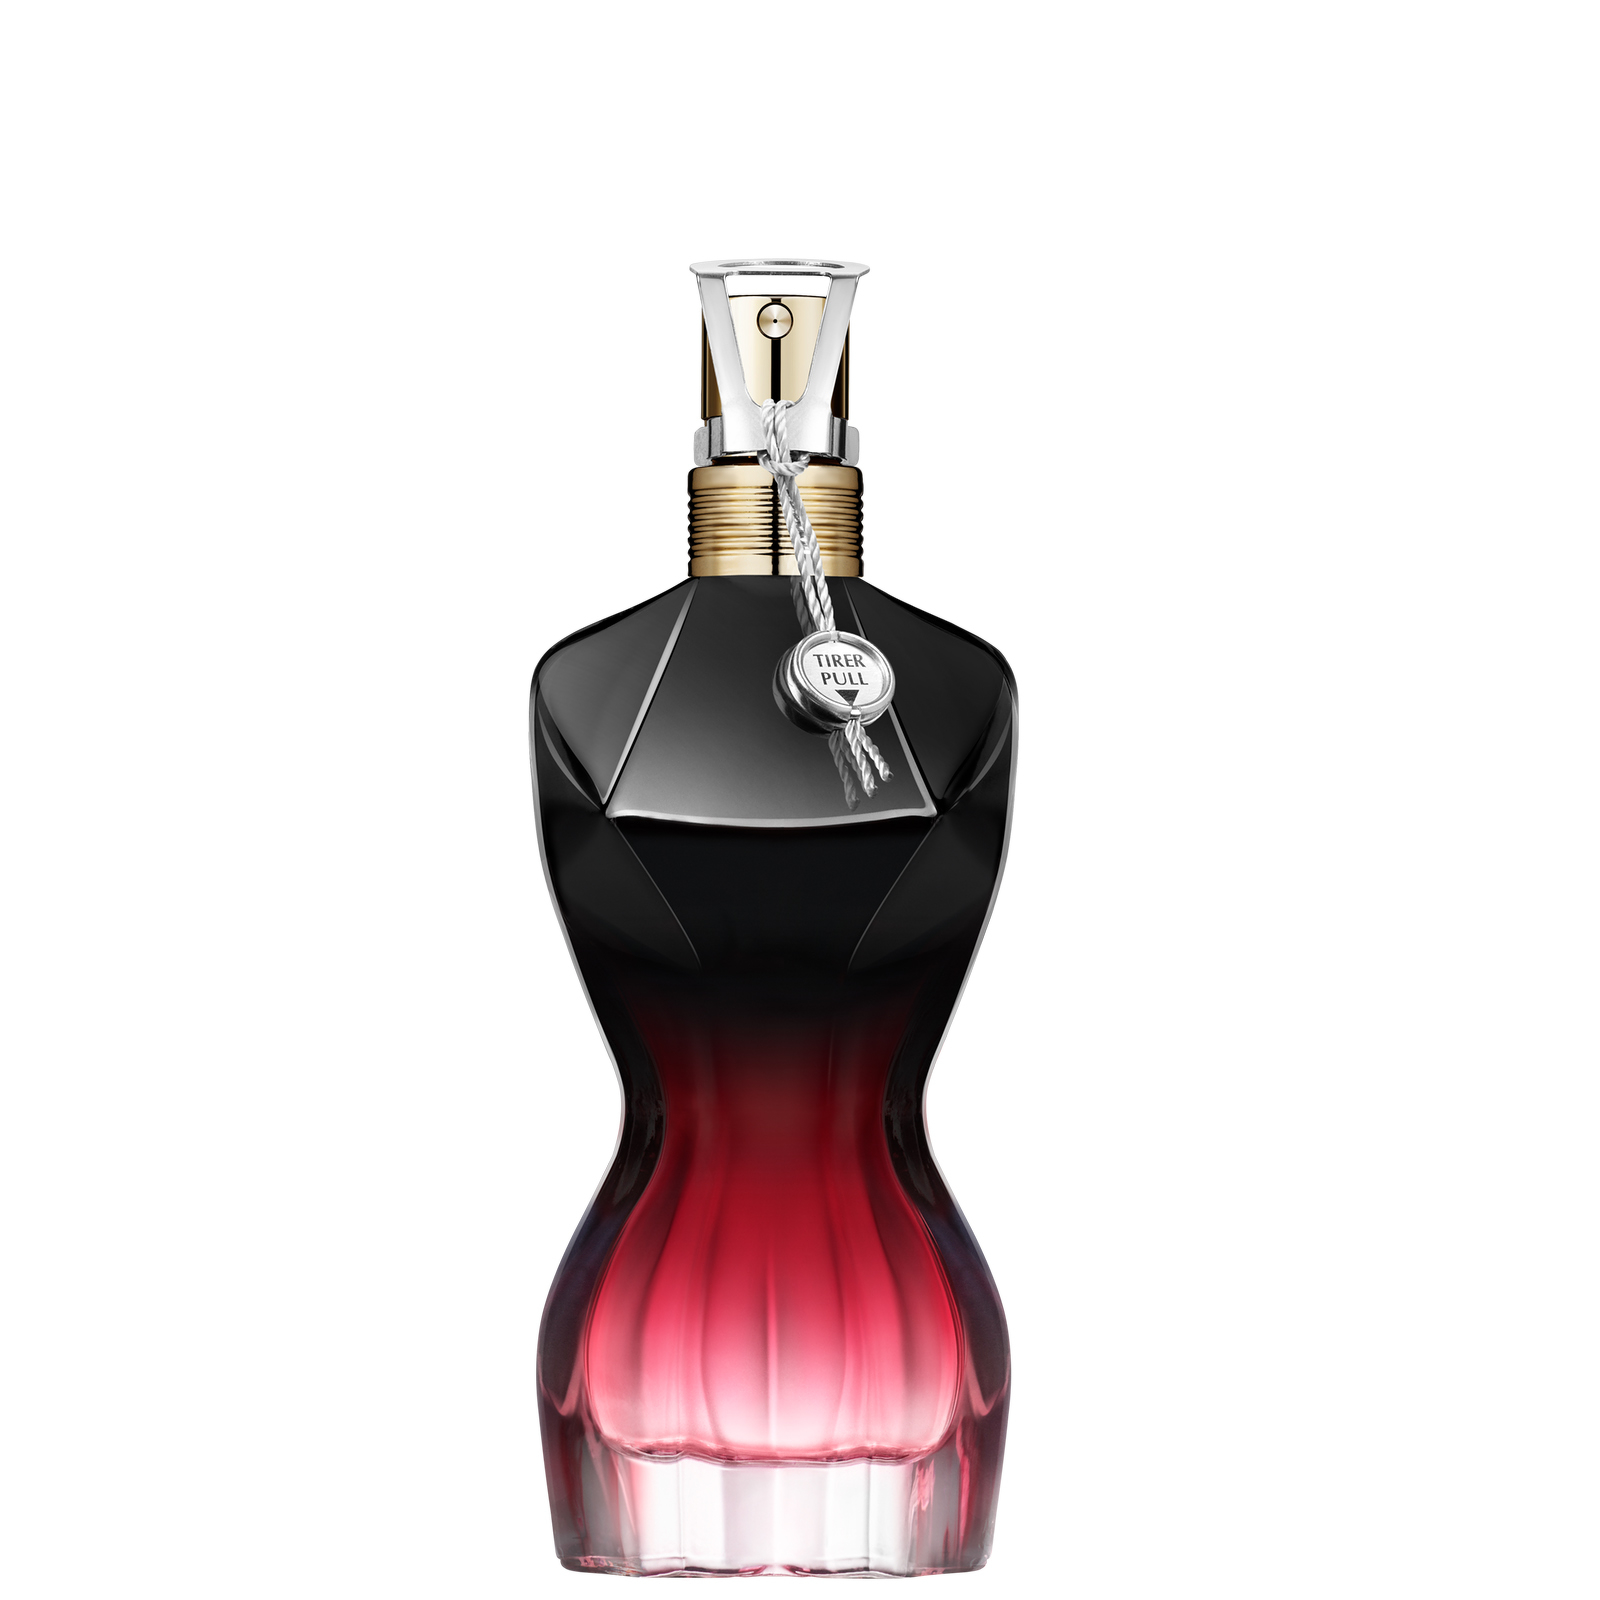 Jean Paul Gaultier La Belle Le Parfum Spray 30ml (Launch 19.05.21)